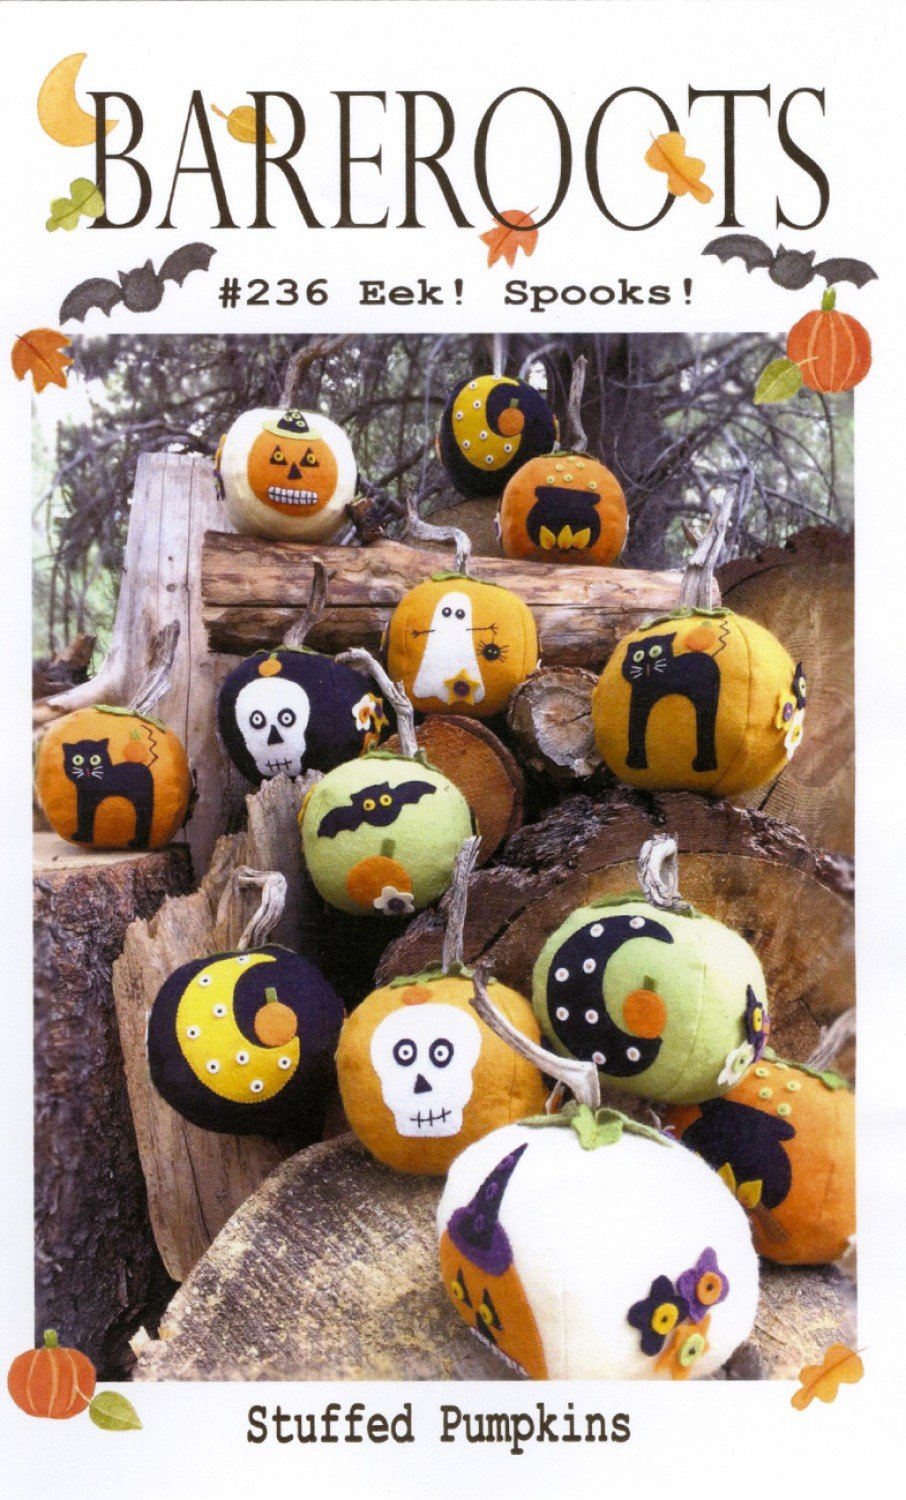 Eek! Spooks! Stuffed Pumpkins